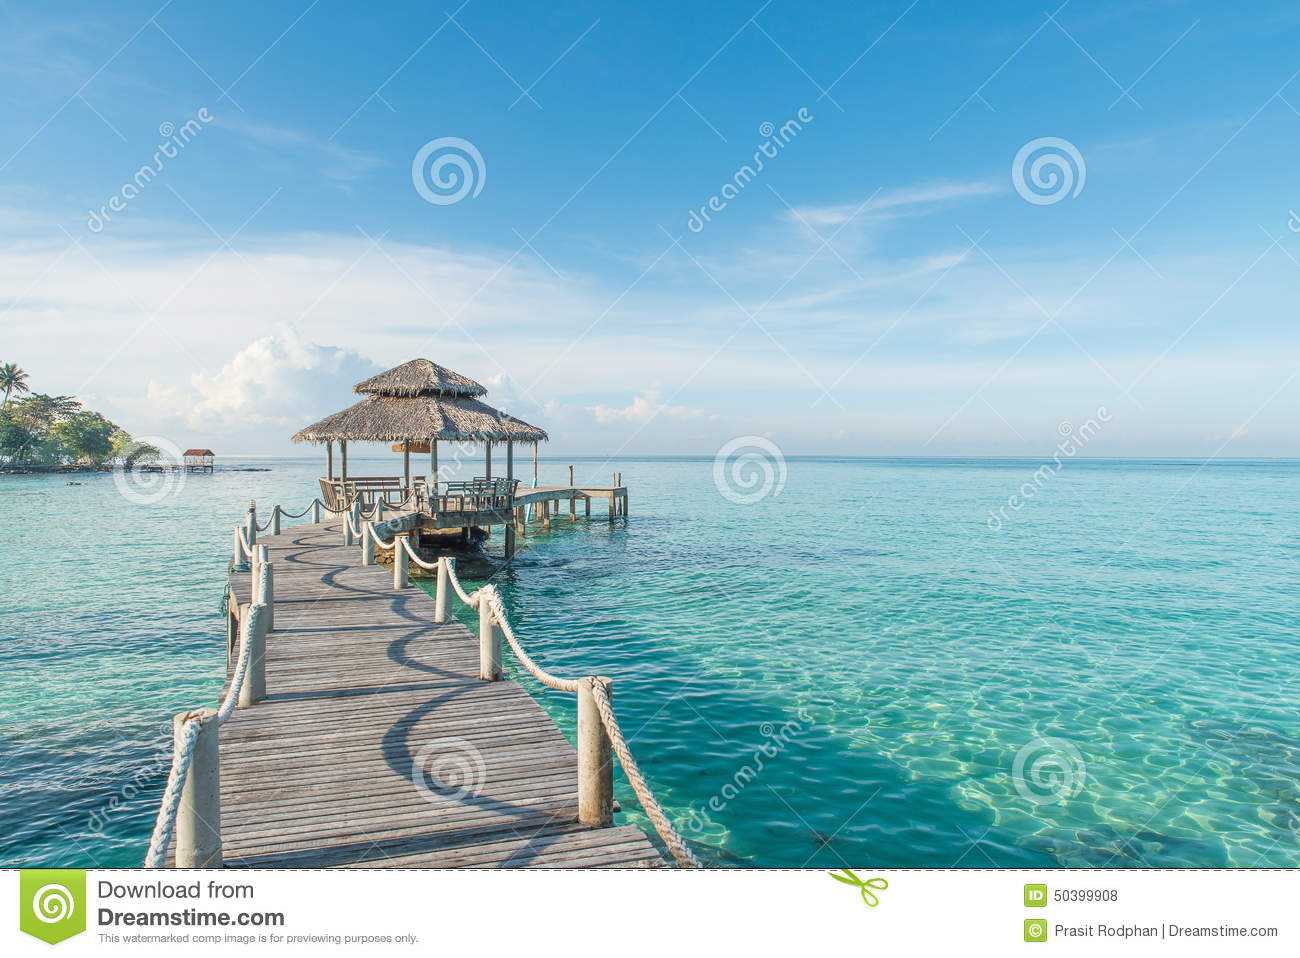 Tropical hut and wooden bridge at holiday resort. Summer travel